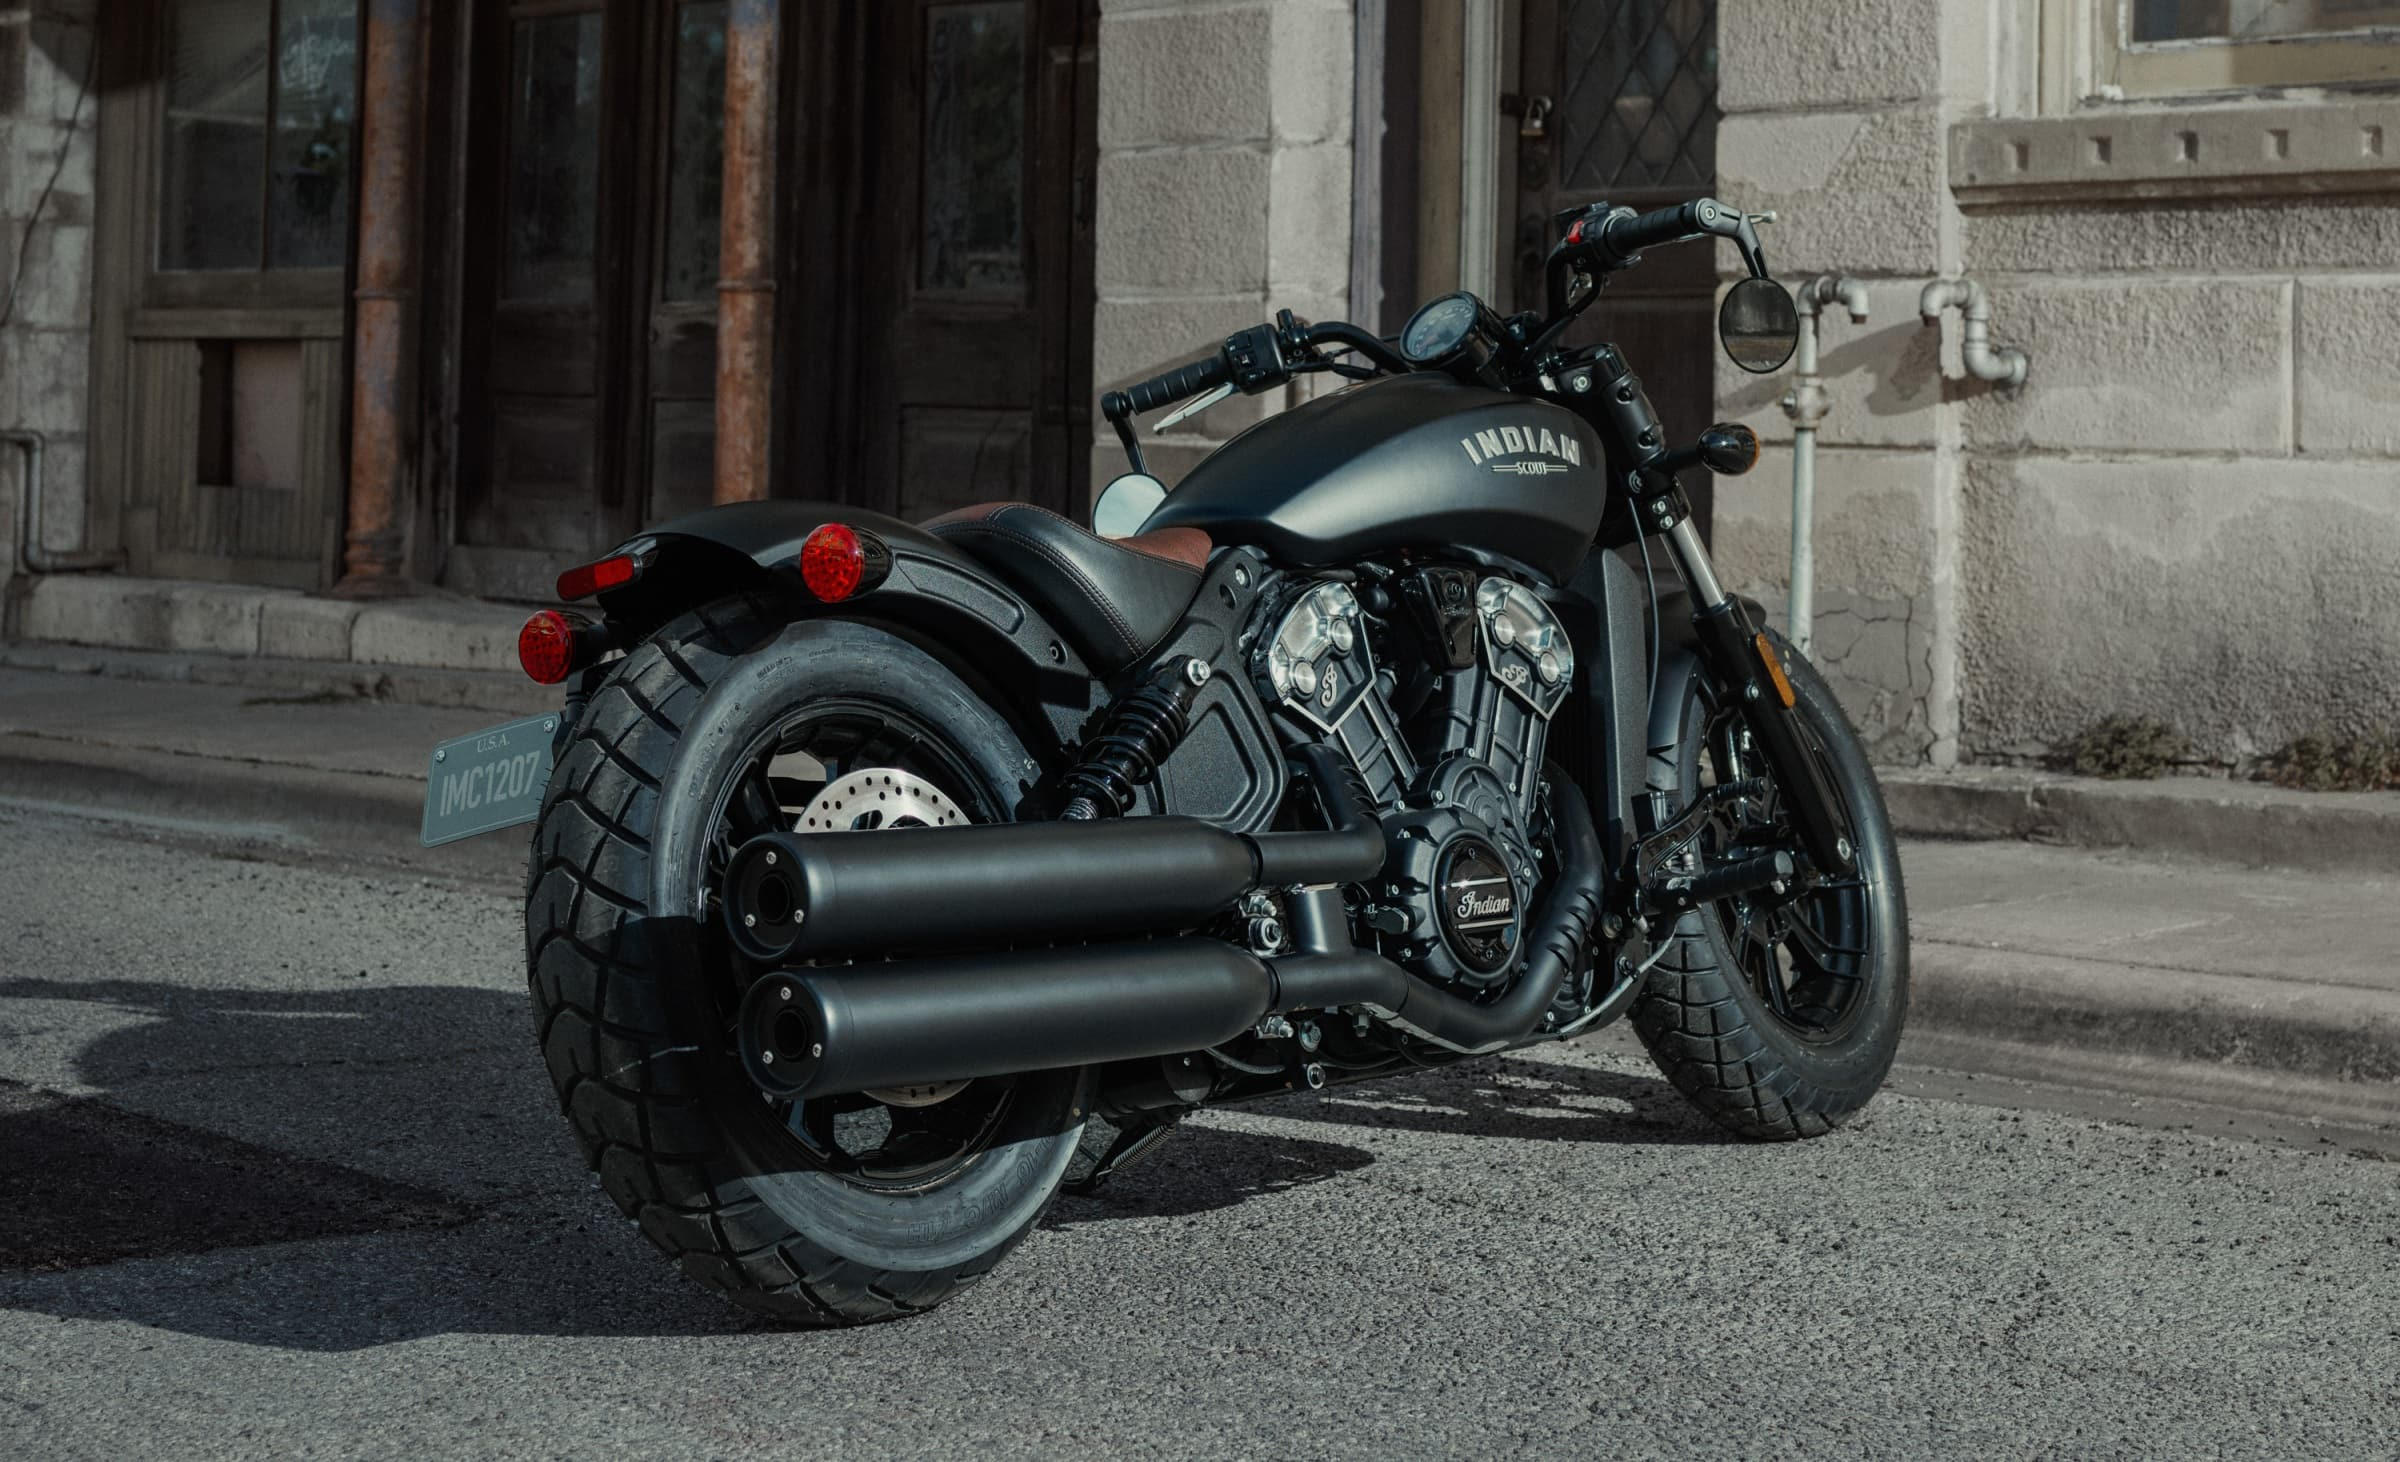 2018 Indian Scout Bobber Launched at India Bike Week 2017; Priced in India at INR 12.99 Lakh | Find New & Upcoming Cars